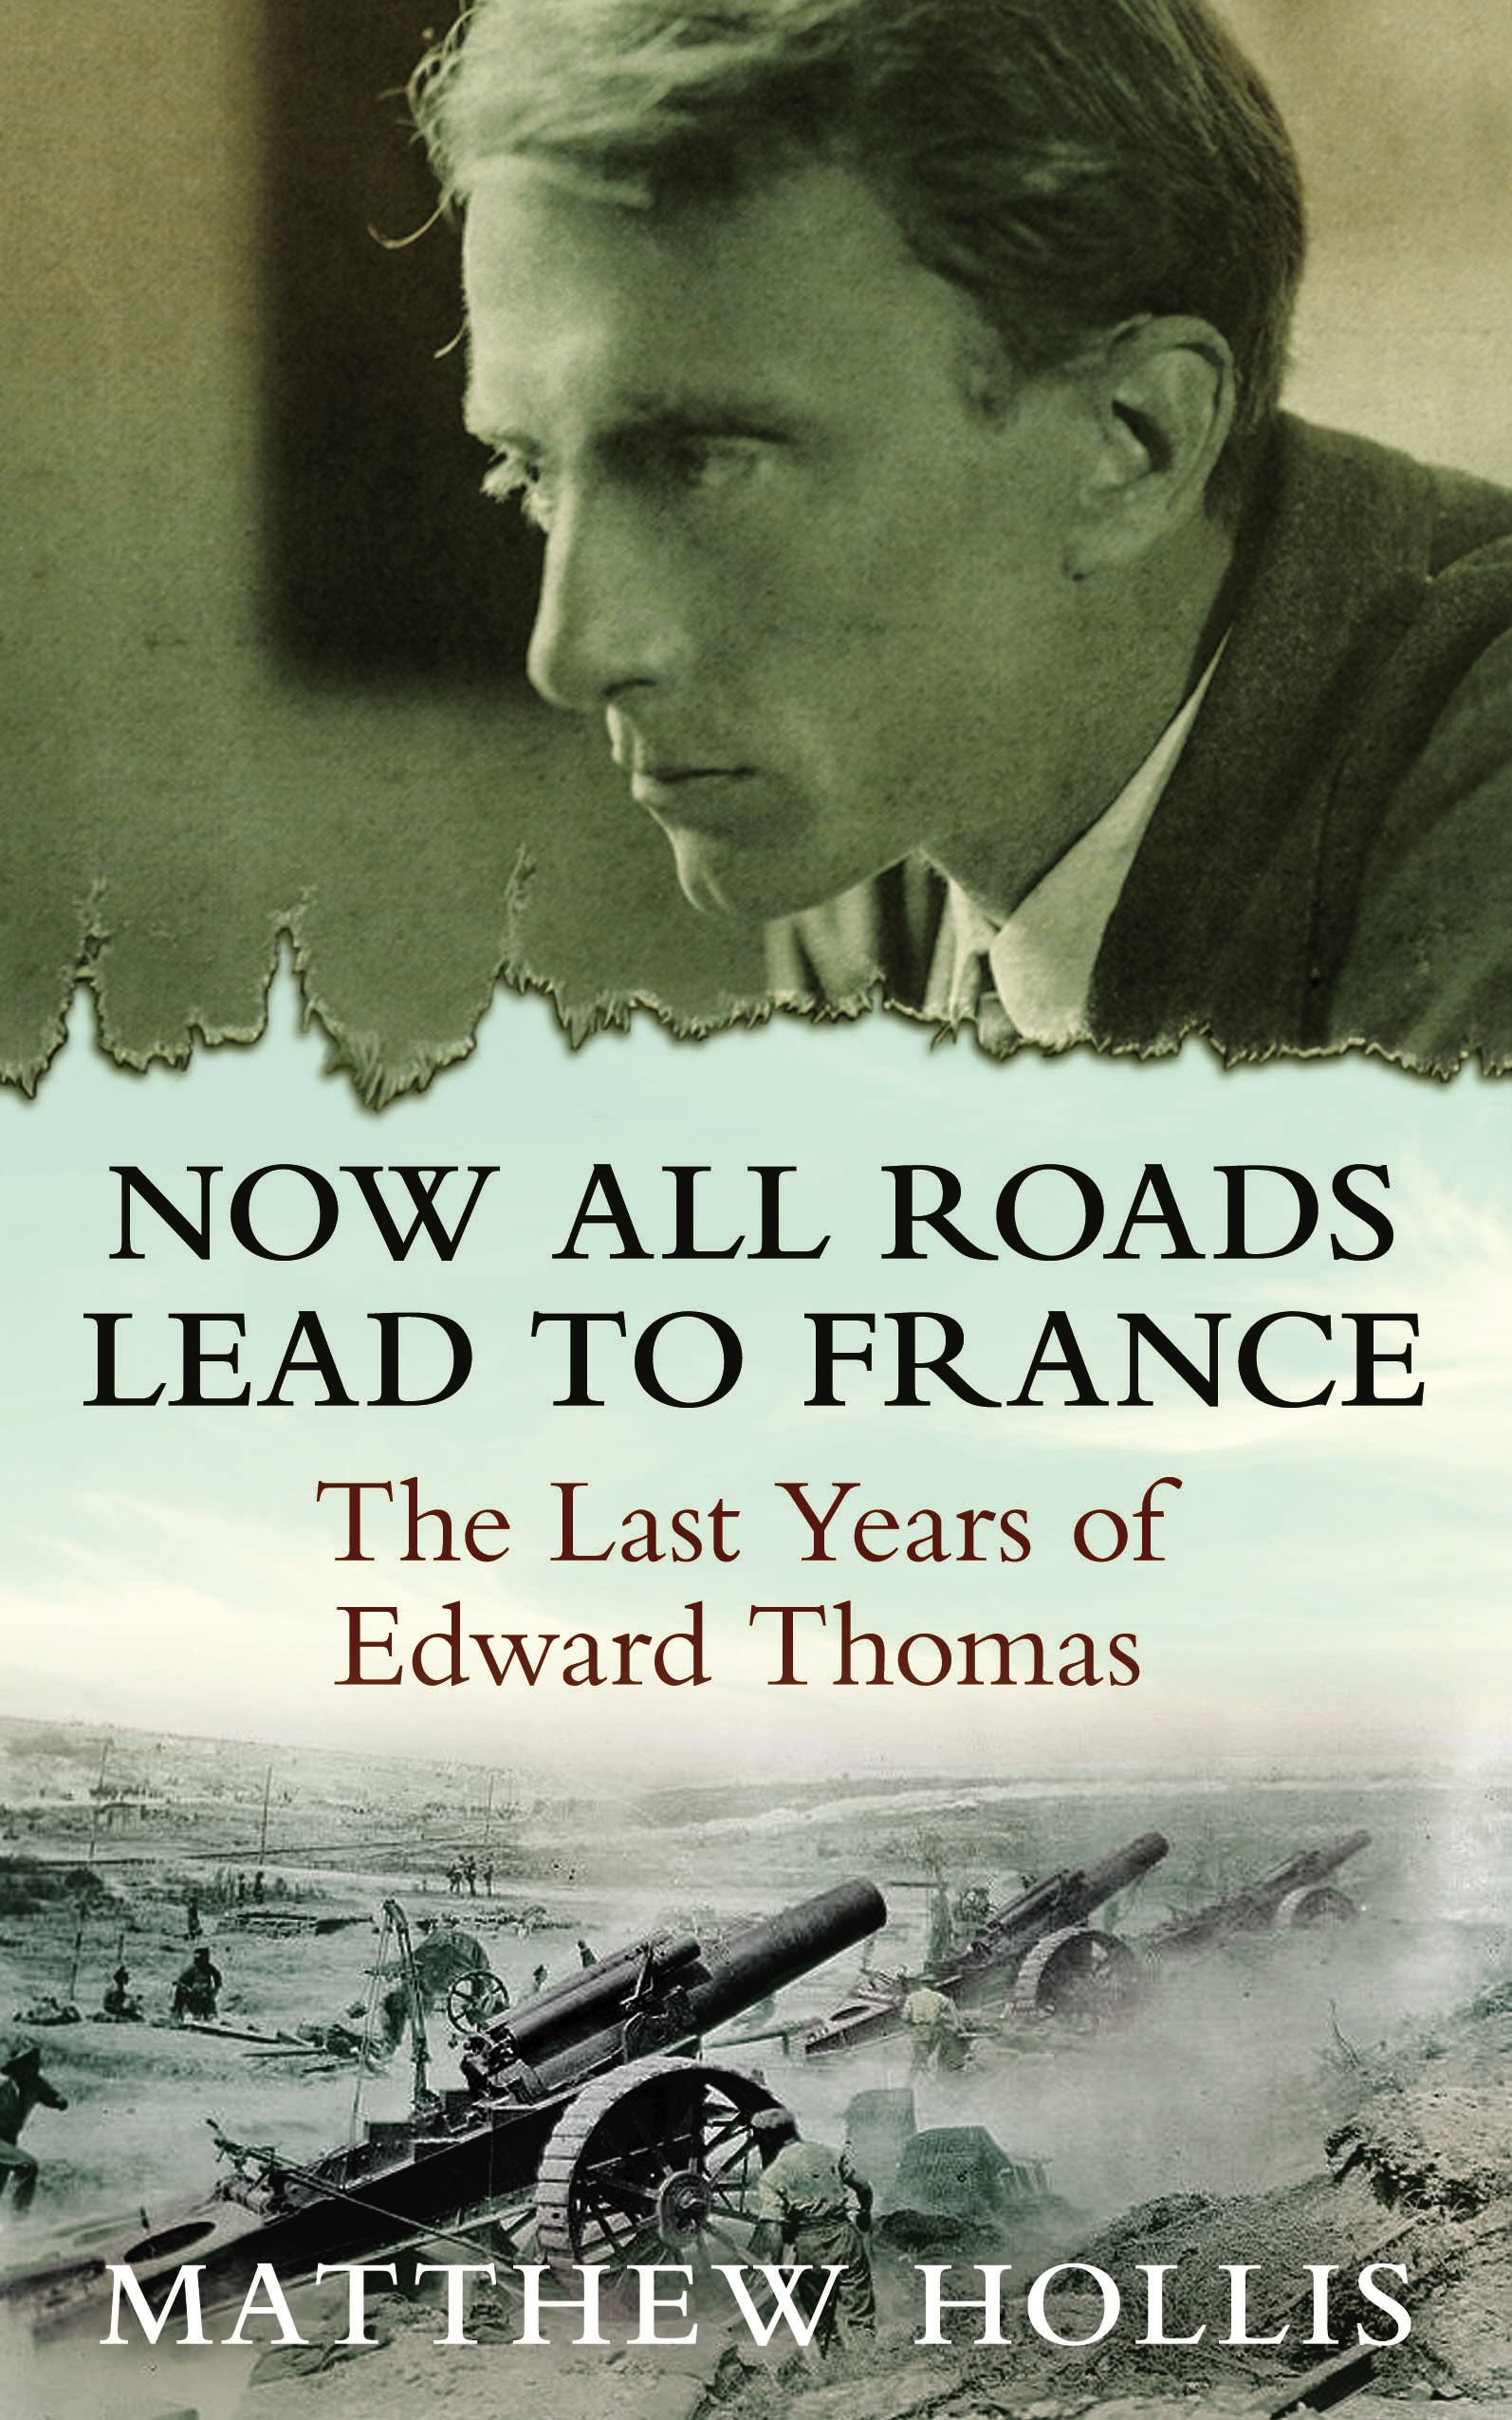 Now All Roads Lead to France: The Last Years of Edward Thomas The Last Years of Edward Thomas